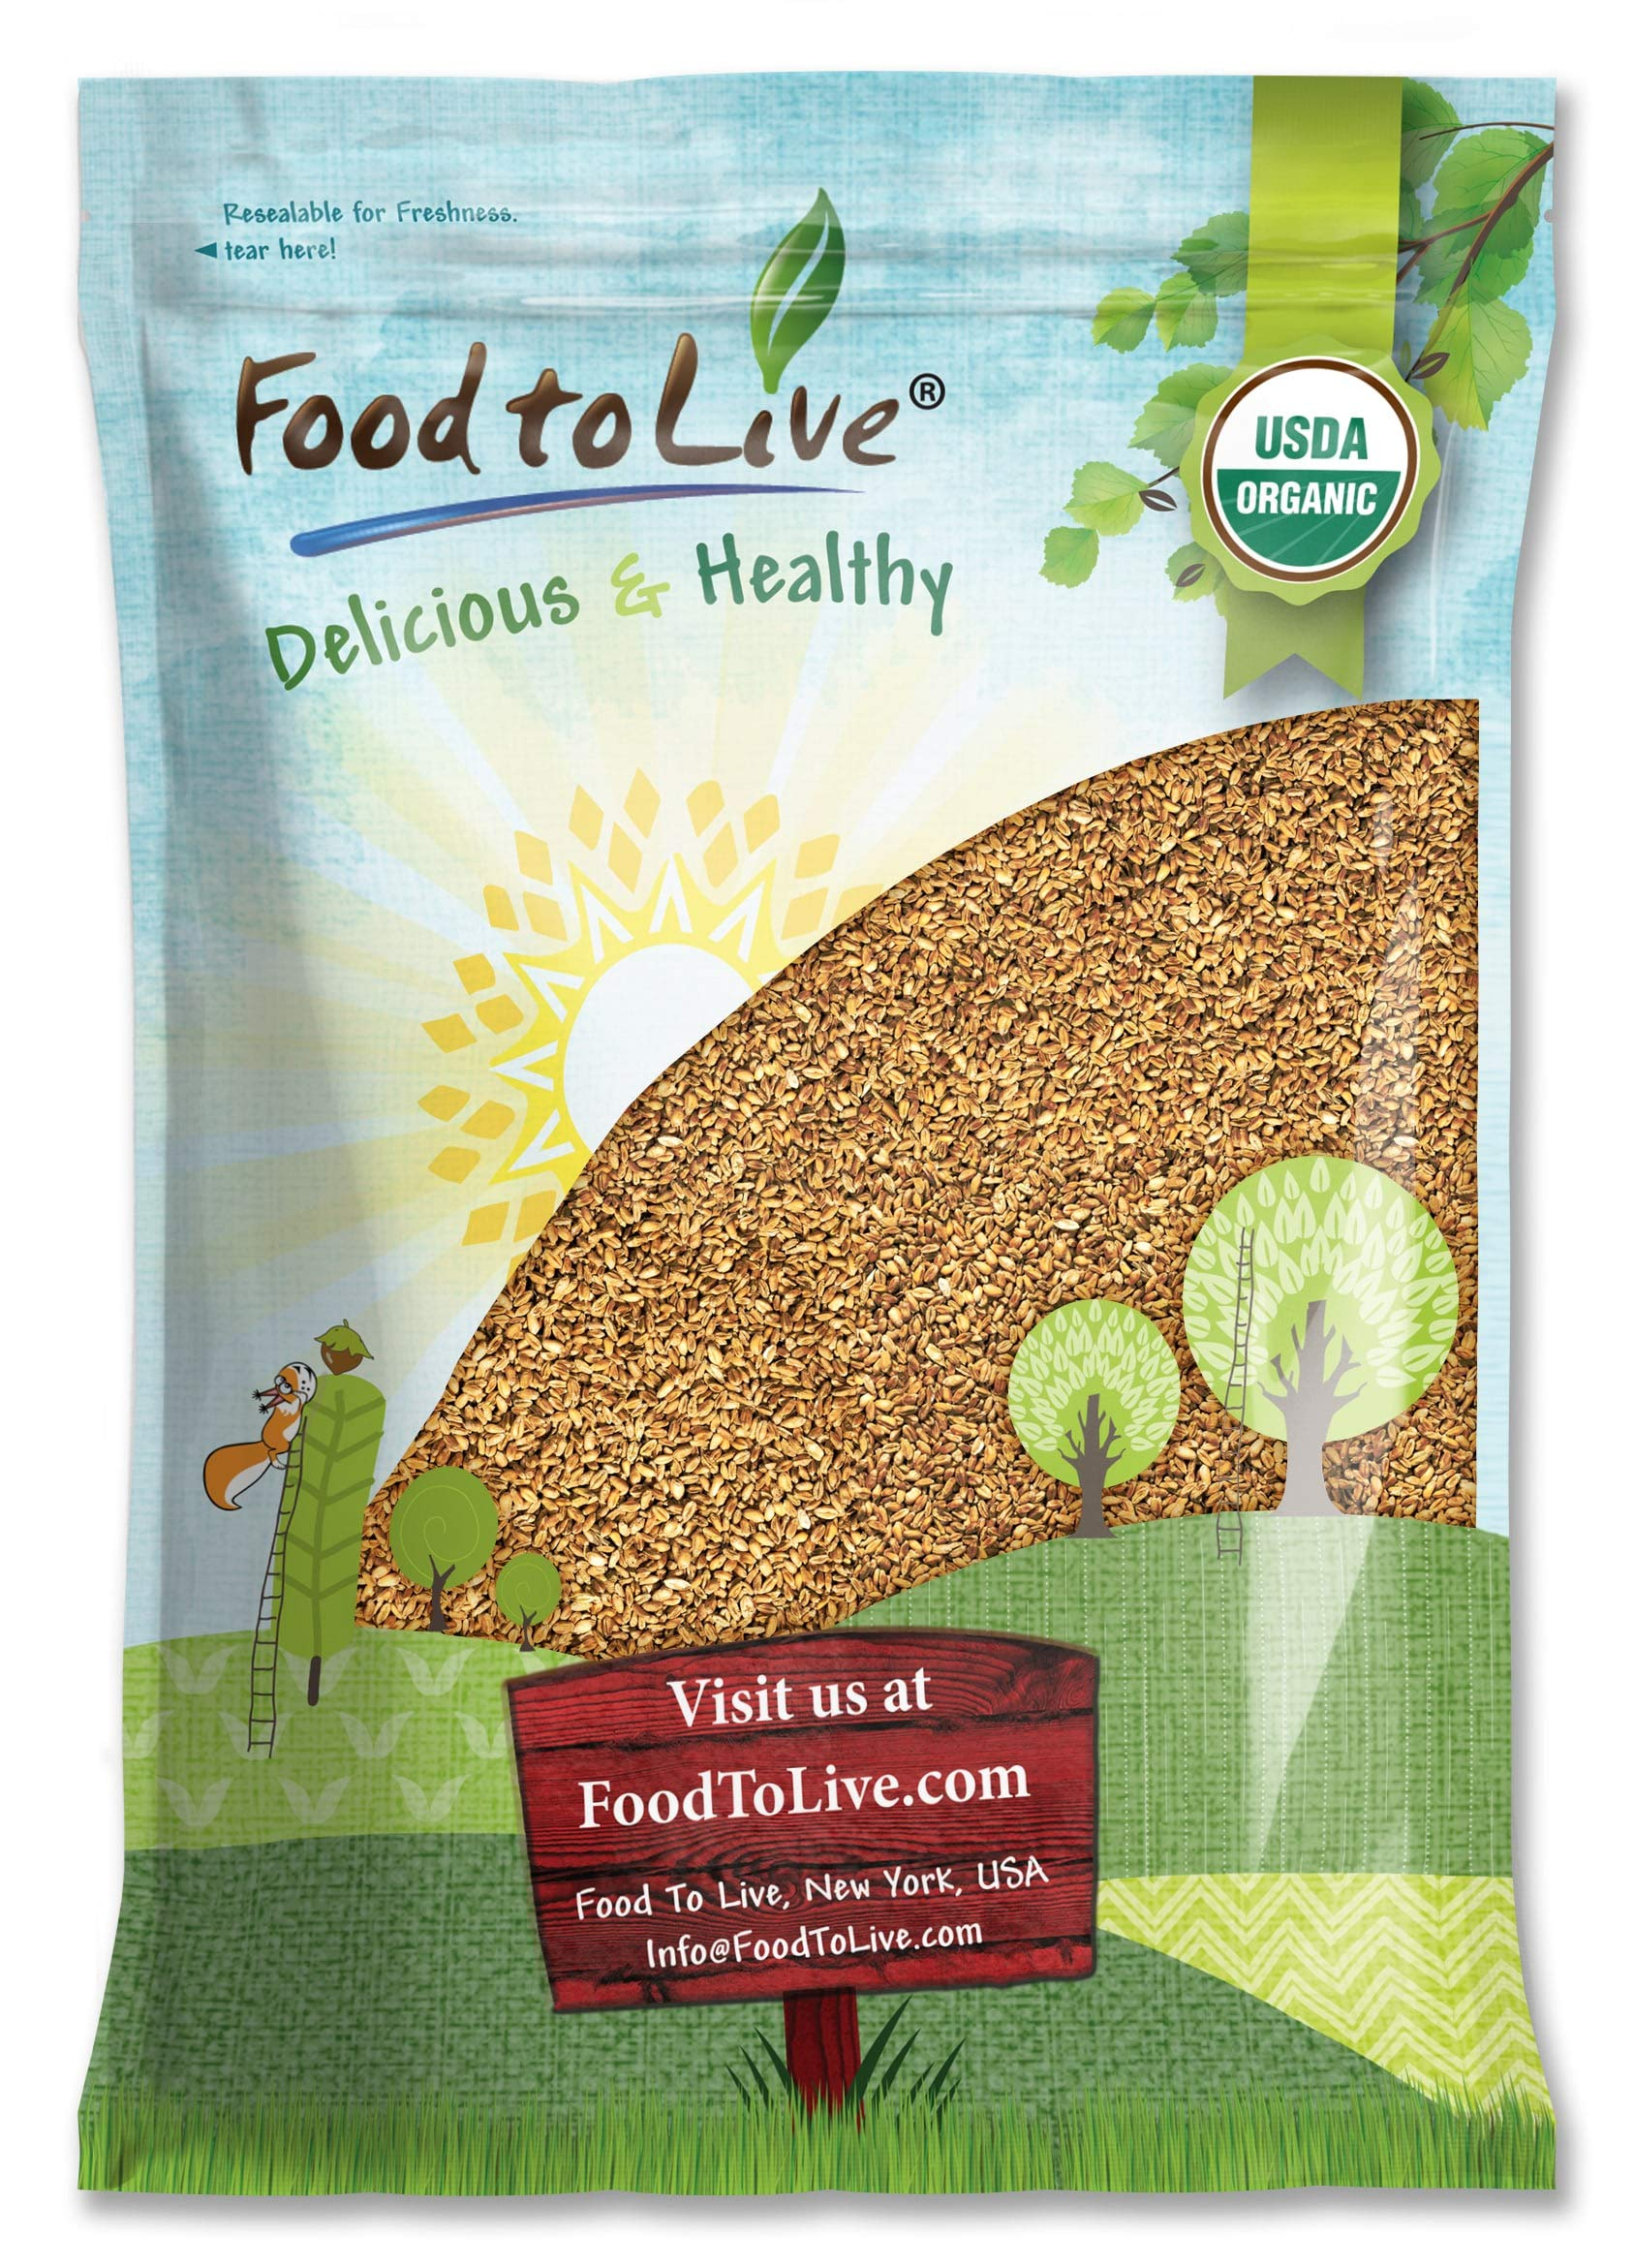 Organic Oat Groats, 5 Pounds — 100% Whole Grain, Non-GMO Seeds, Kosher, Raw, Non-Irradiated, Vegan, Sproutable, Bulk, Low Glycemic, Rich in Protein, Fiber, Copper and Manganese